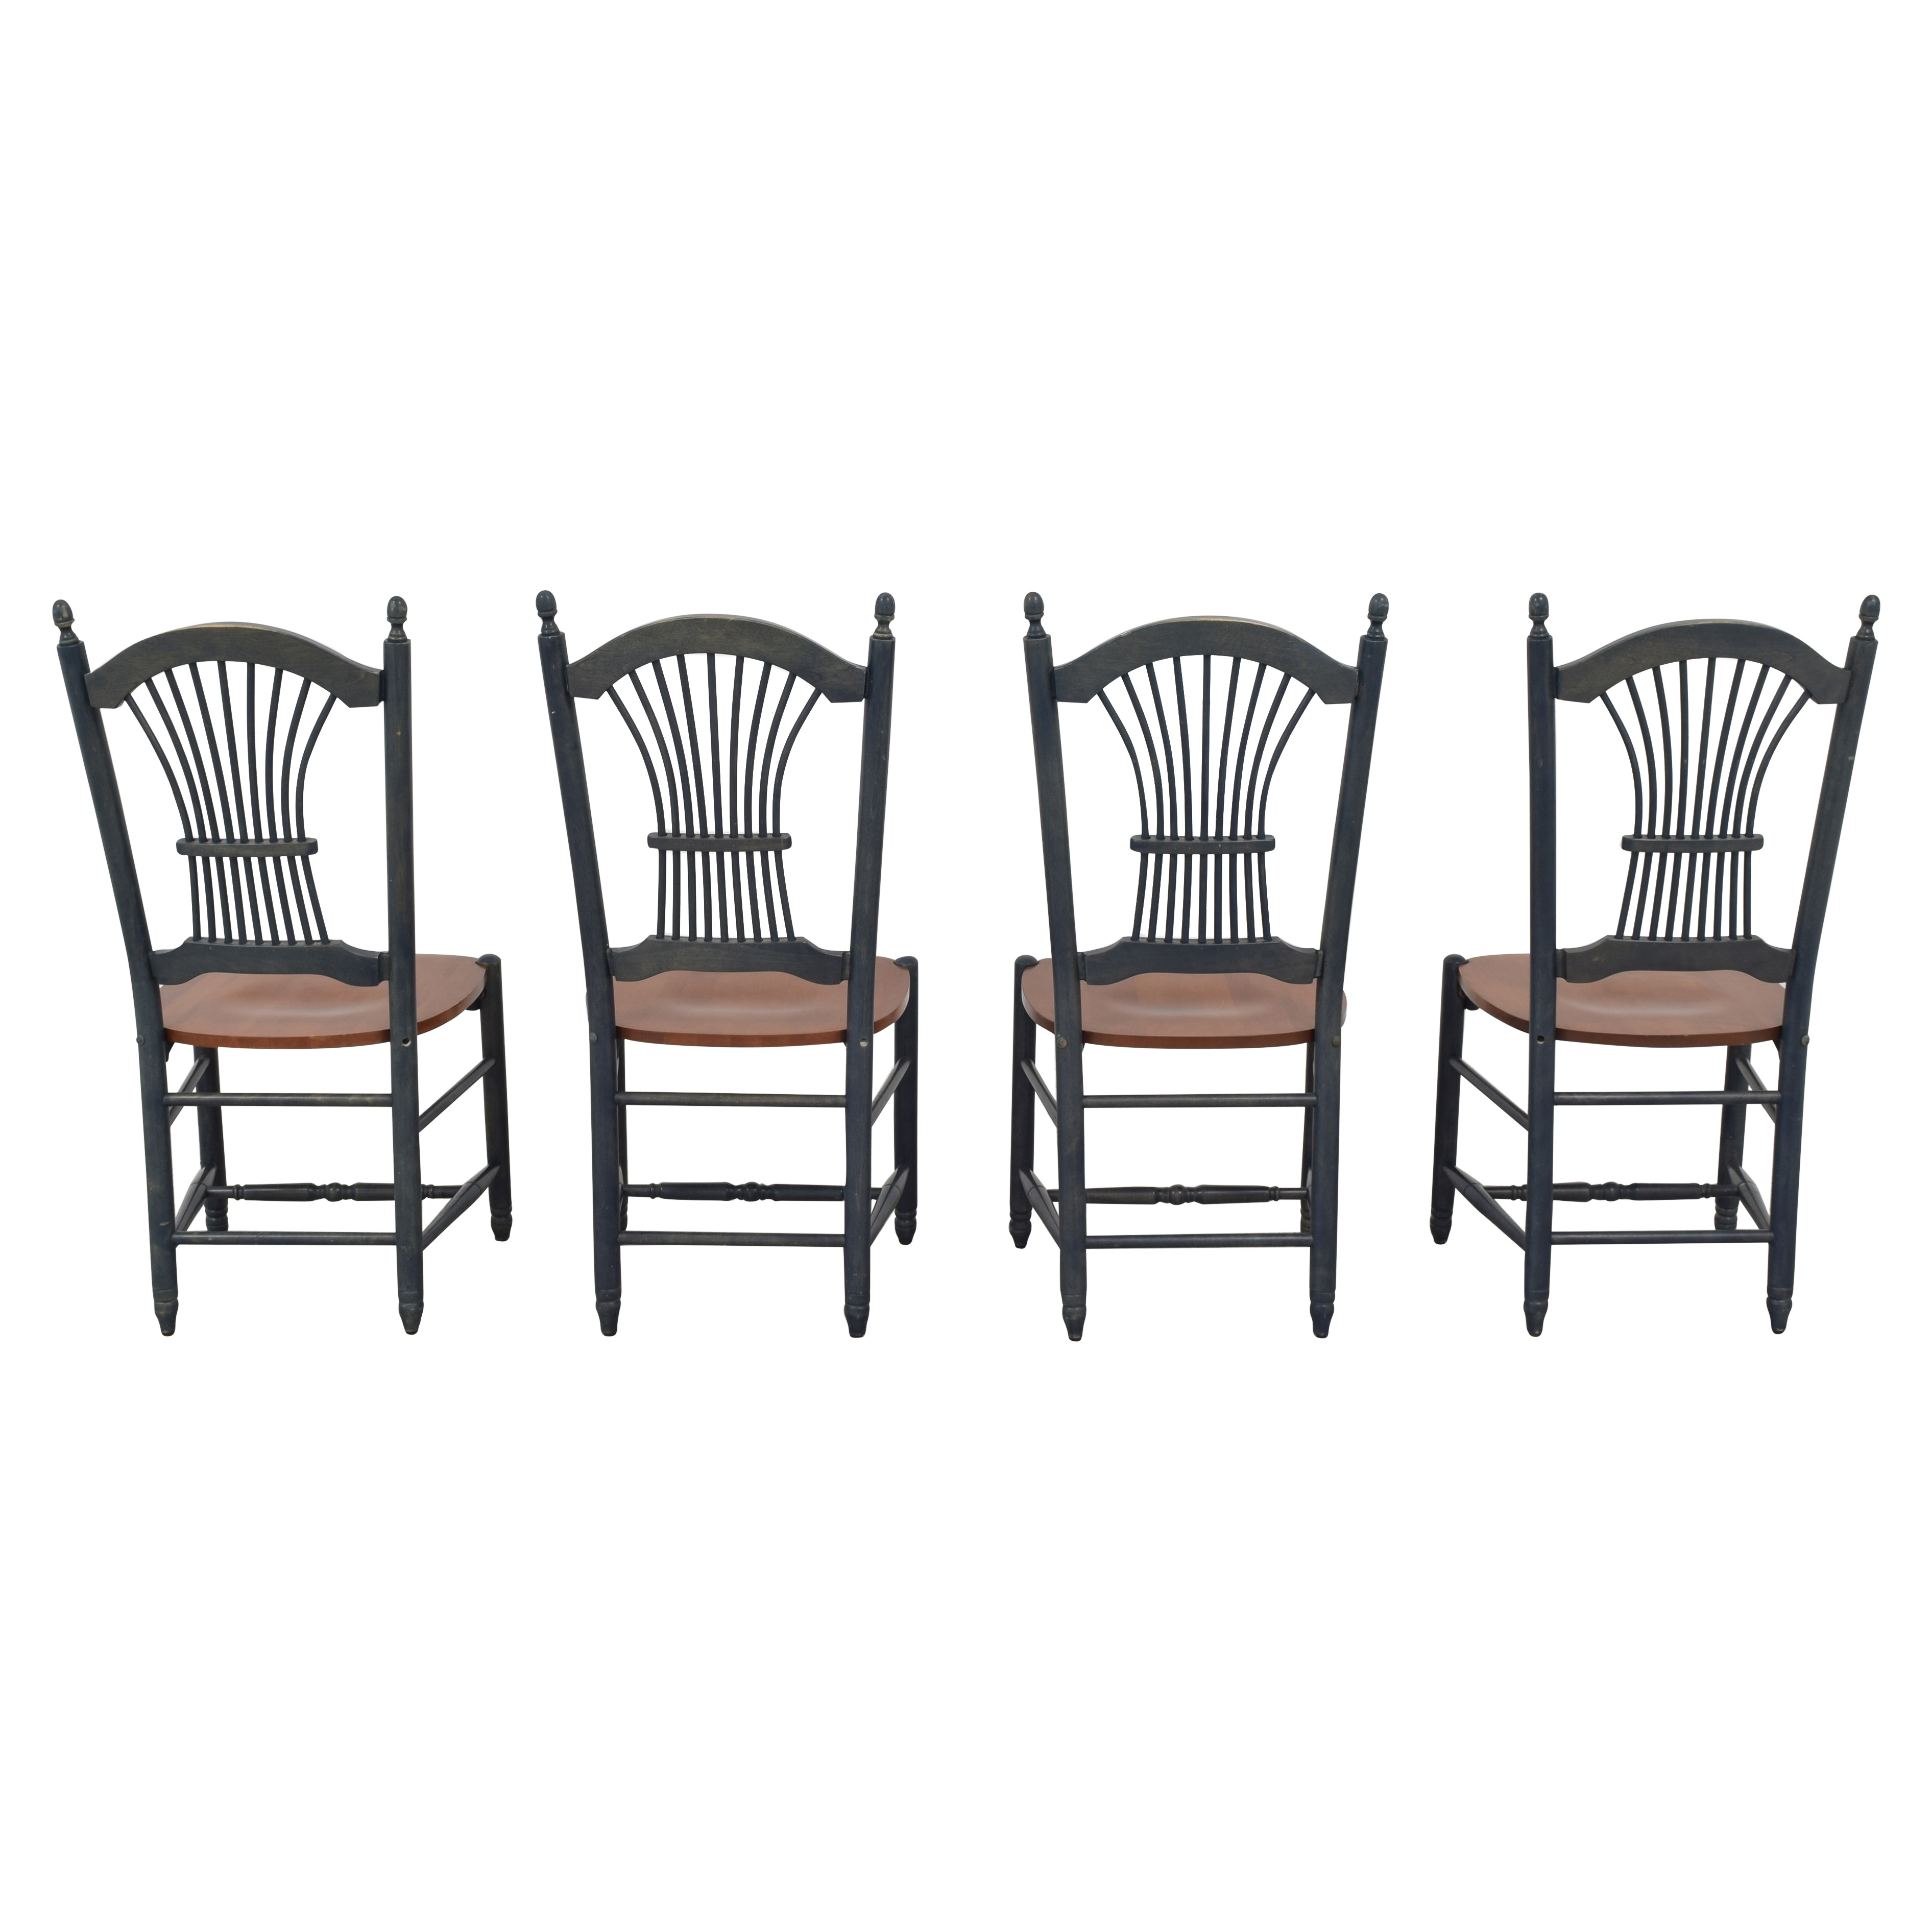 Canadel Canadel Custom Made Dining Room Chairs ct